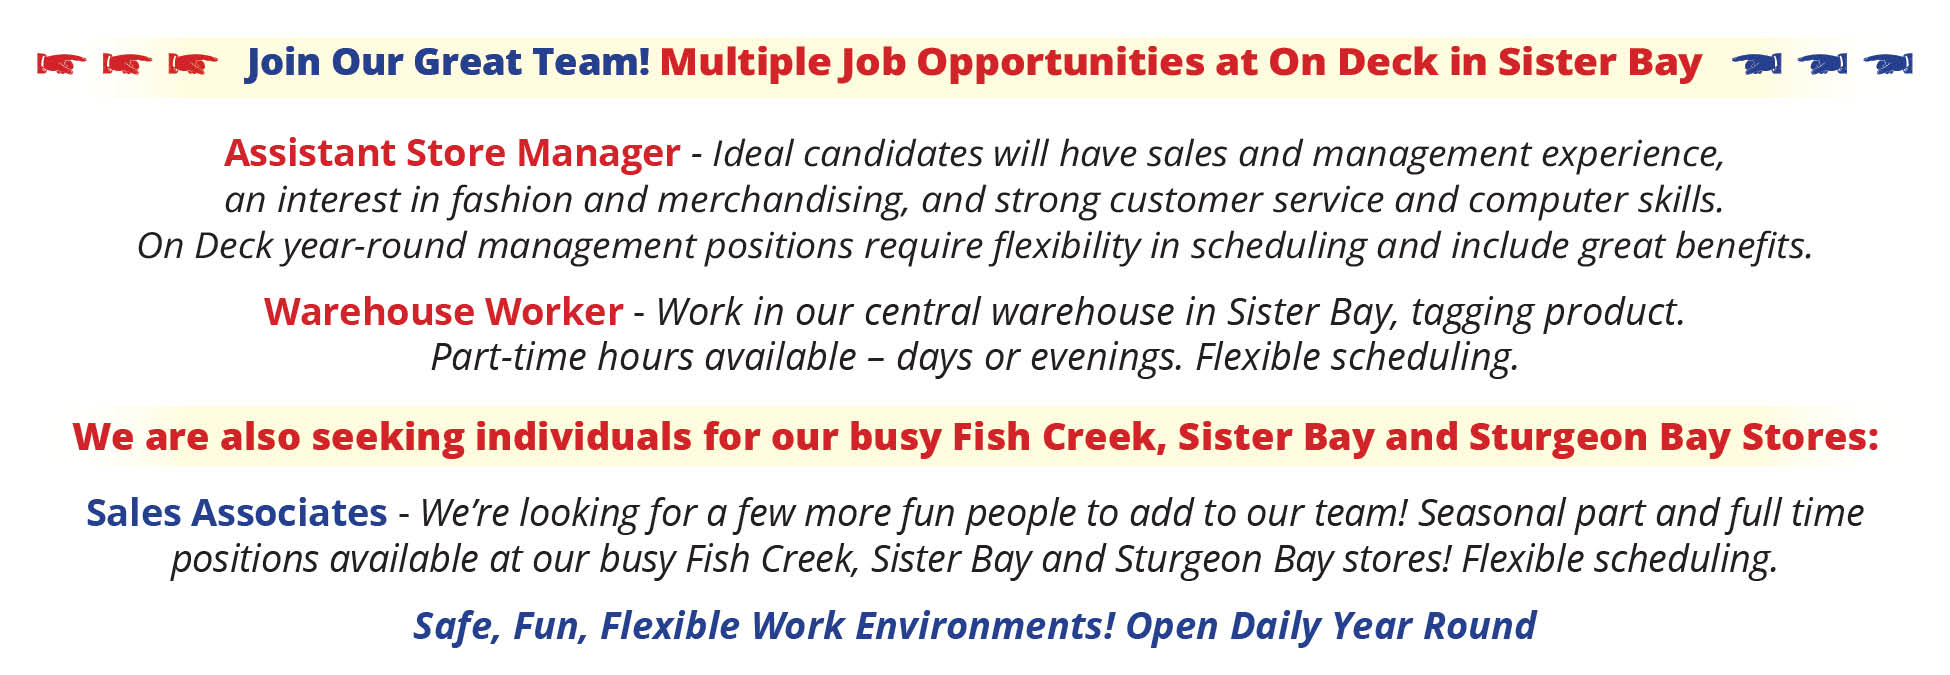 Best jobs ever! Right here at On Deck!